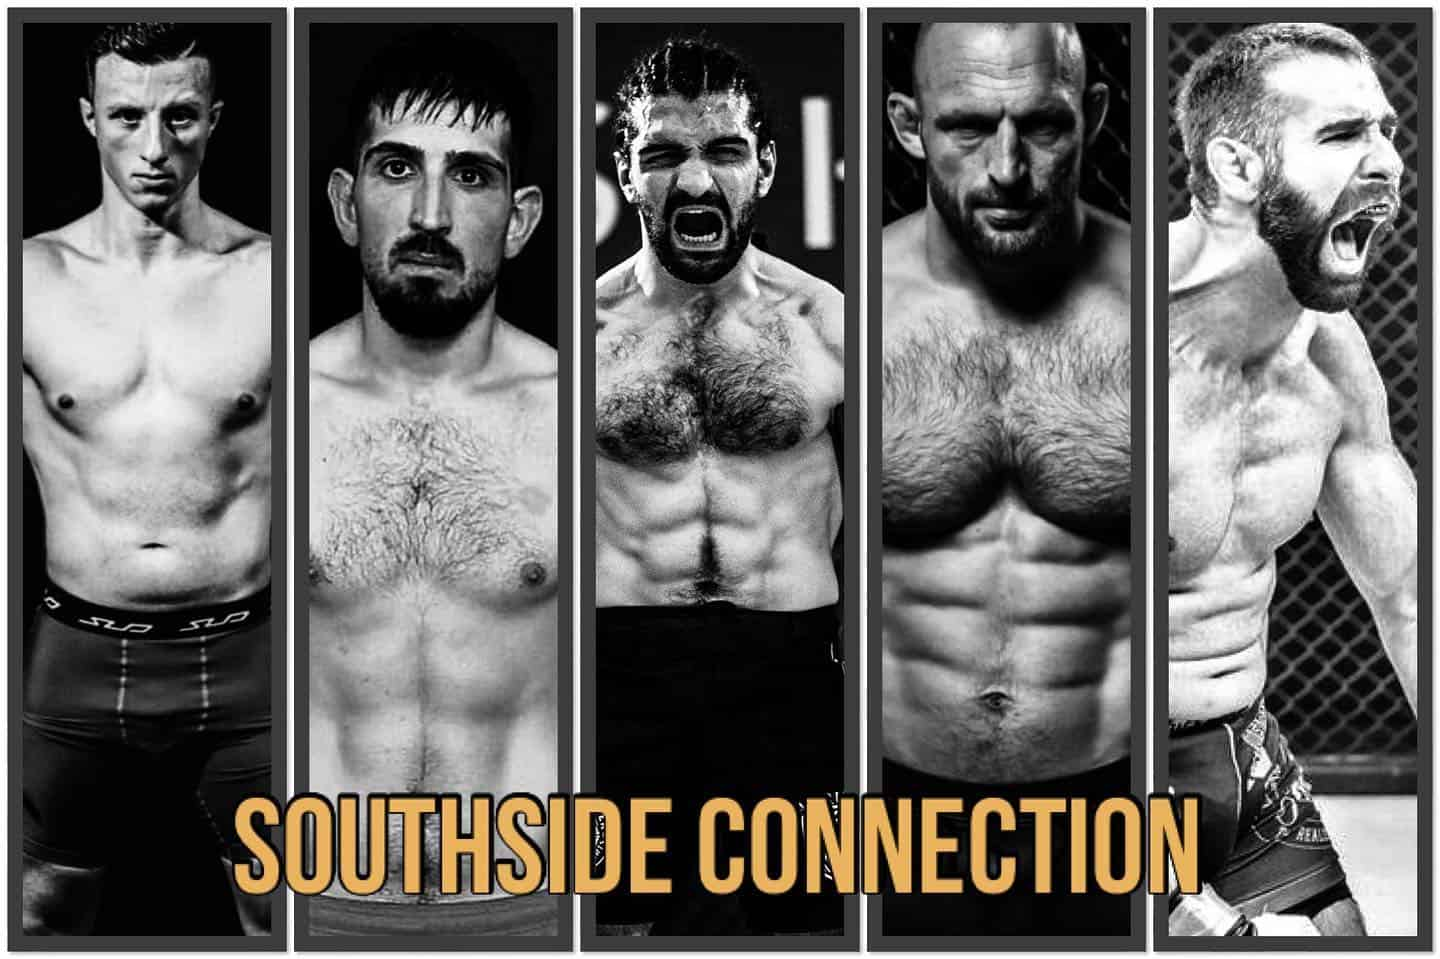 Southside Connection